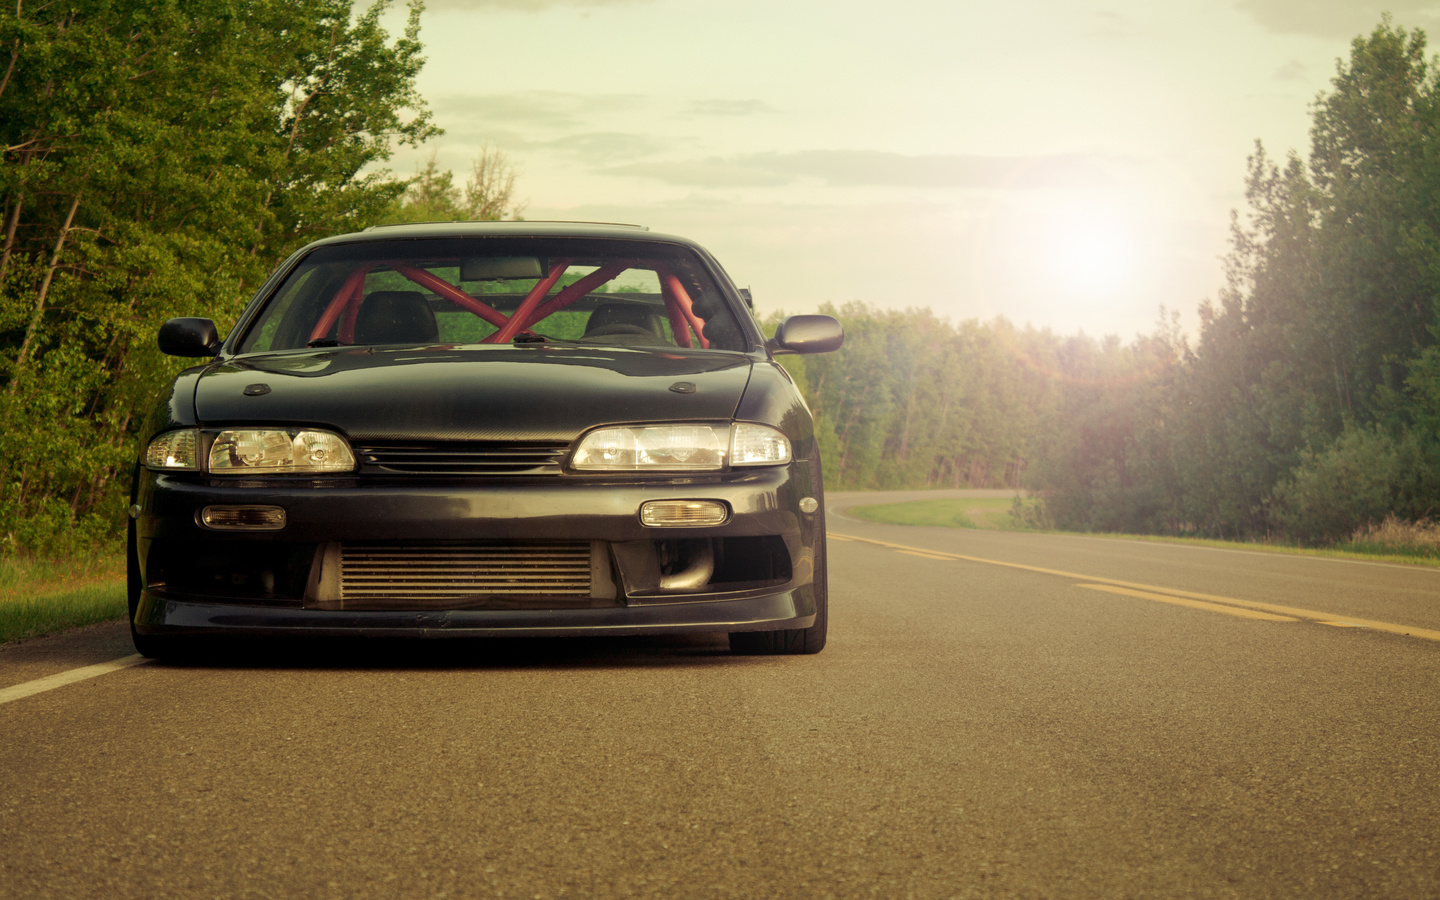 nissan, nissan s14, s14, Auto, обои авто, wallpapers auto, tuning cars, cars